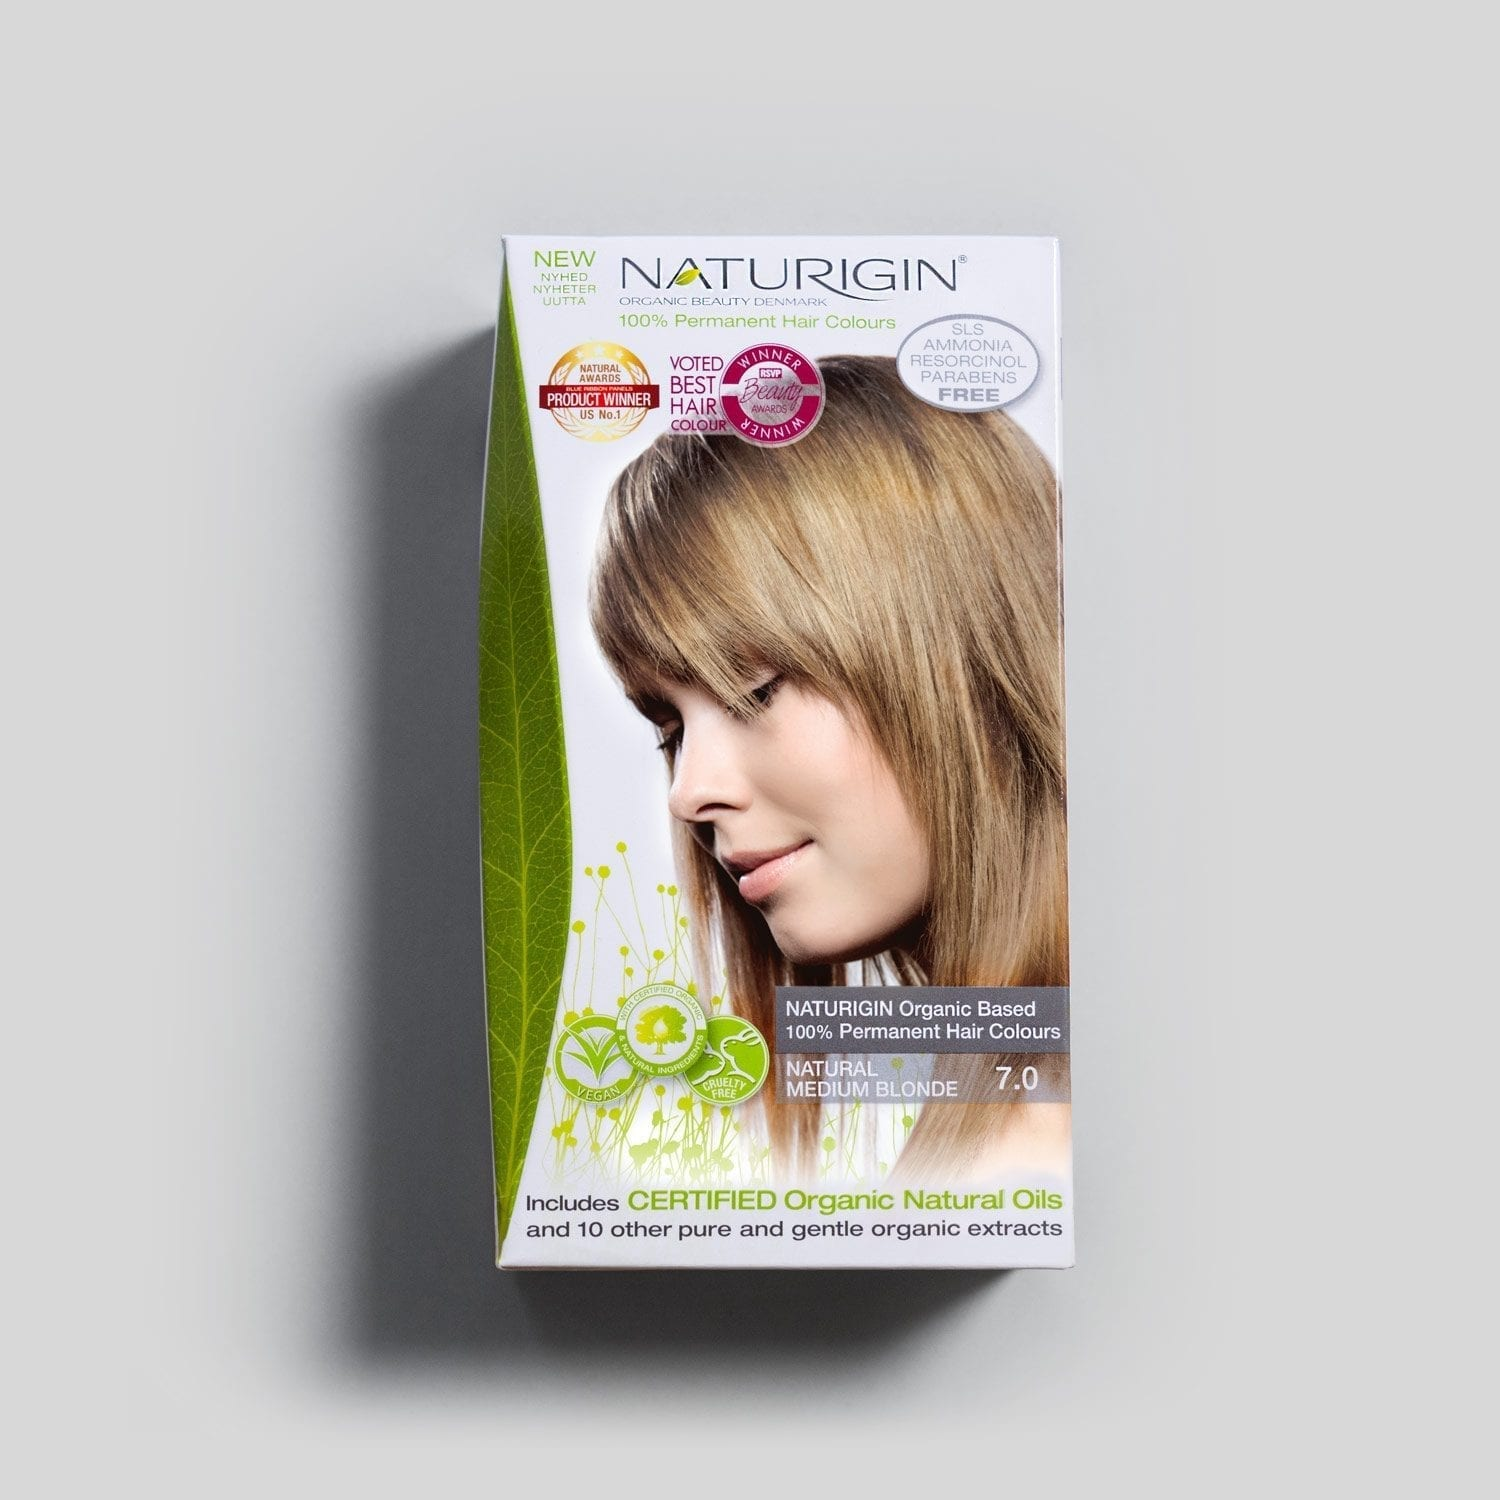 NATURIGIN 7.0 Naturlig Medium Blond